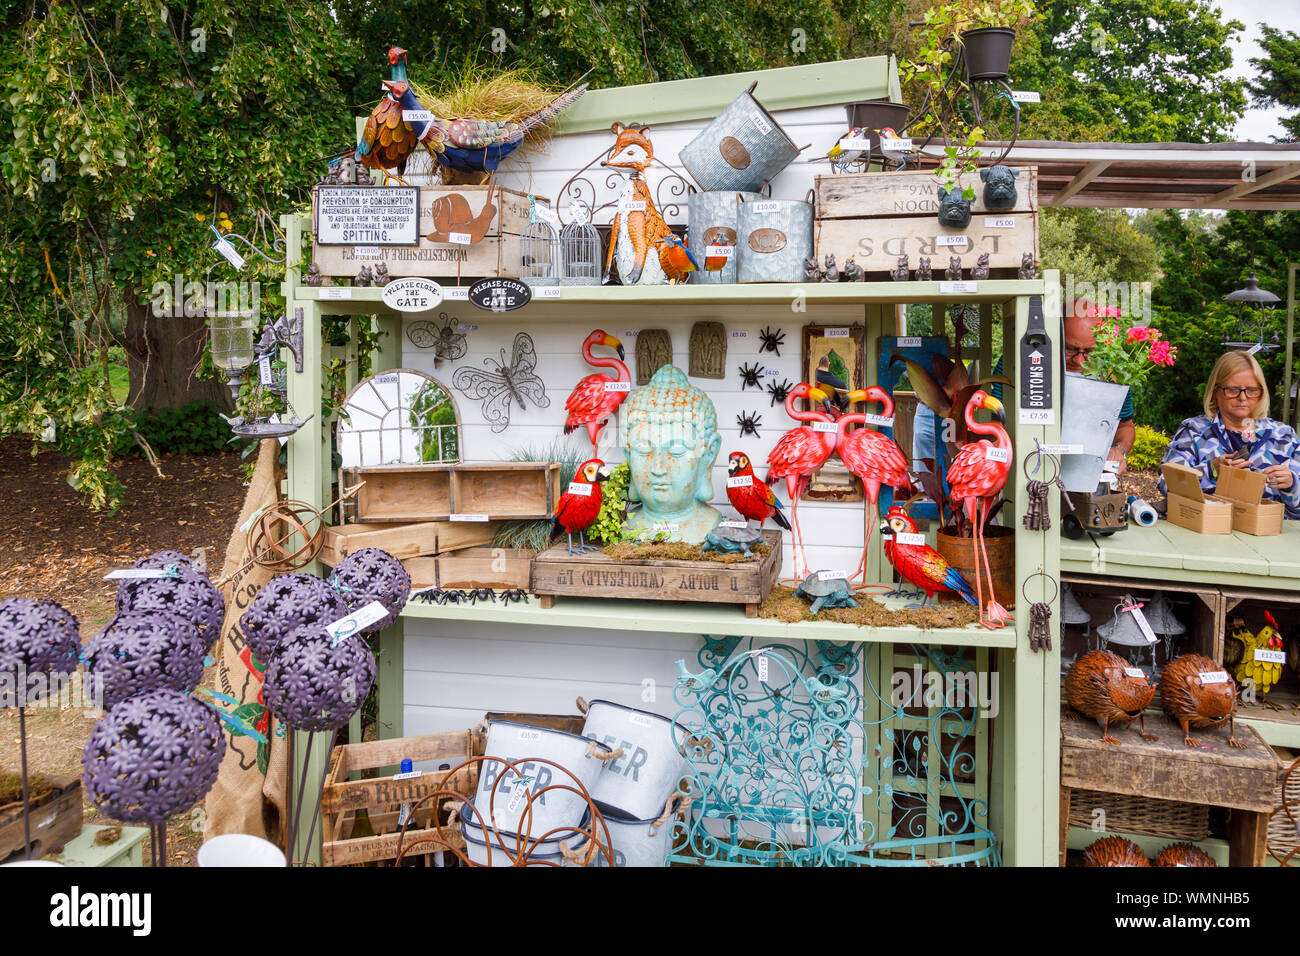 Garden ornaments for sale at a stall at the September 2019 Wisley Garden Flower Show at RHS Garden Wisley, Surrey, south-east England Stock Photo